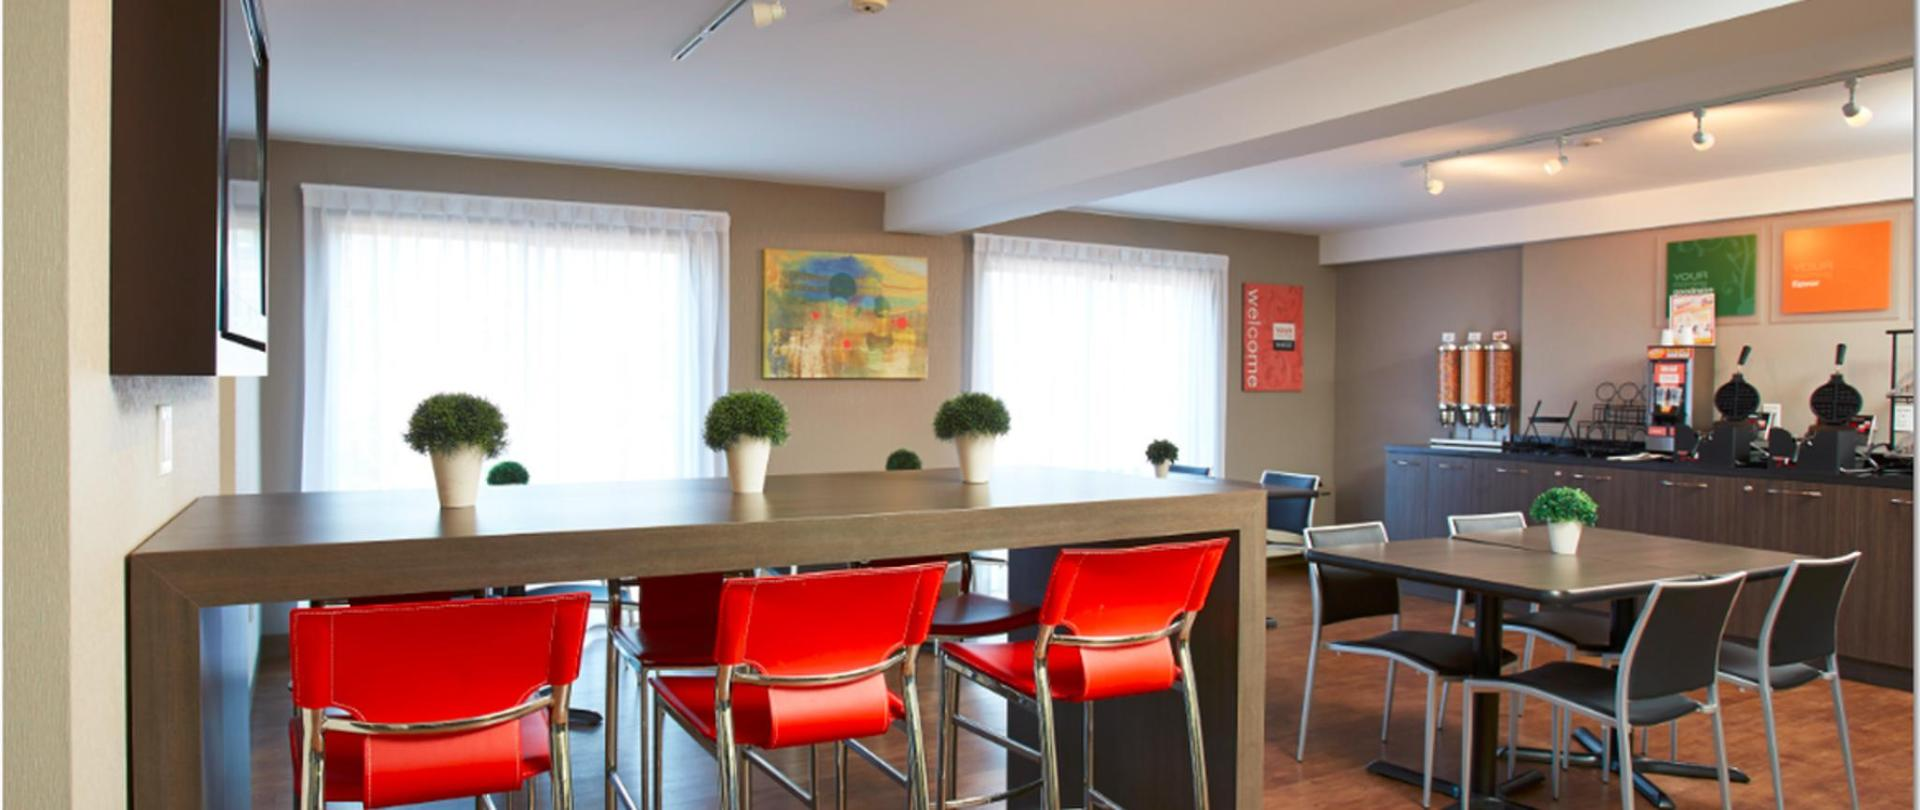 breakfast-room-2-jpg.png.1170x493_default.png